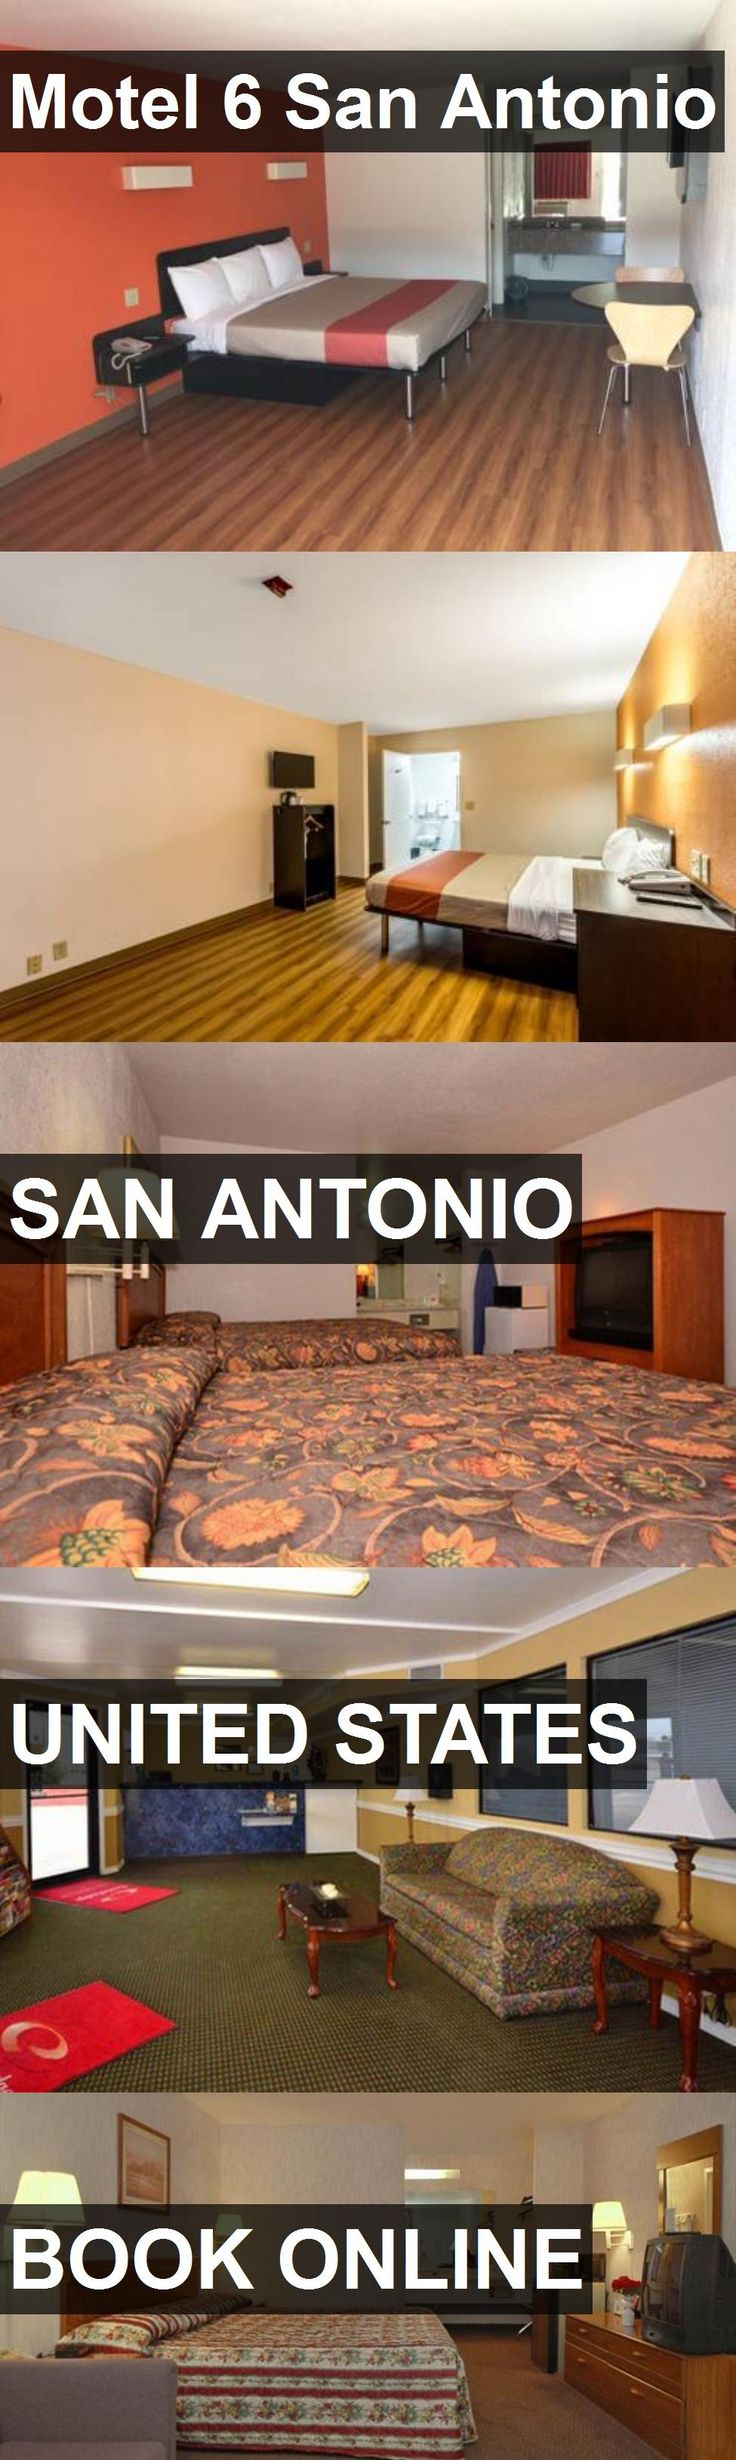 Hotel Motel 6 San Antonio in San Antonio, United States. For more information, photos, reviews and best prices please follow the link. #UnitedStates #SanAntonio #travel #vacation #hotel